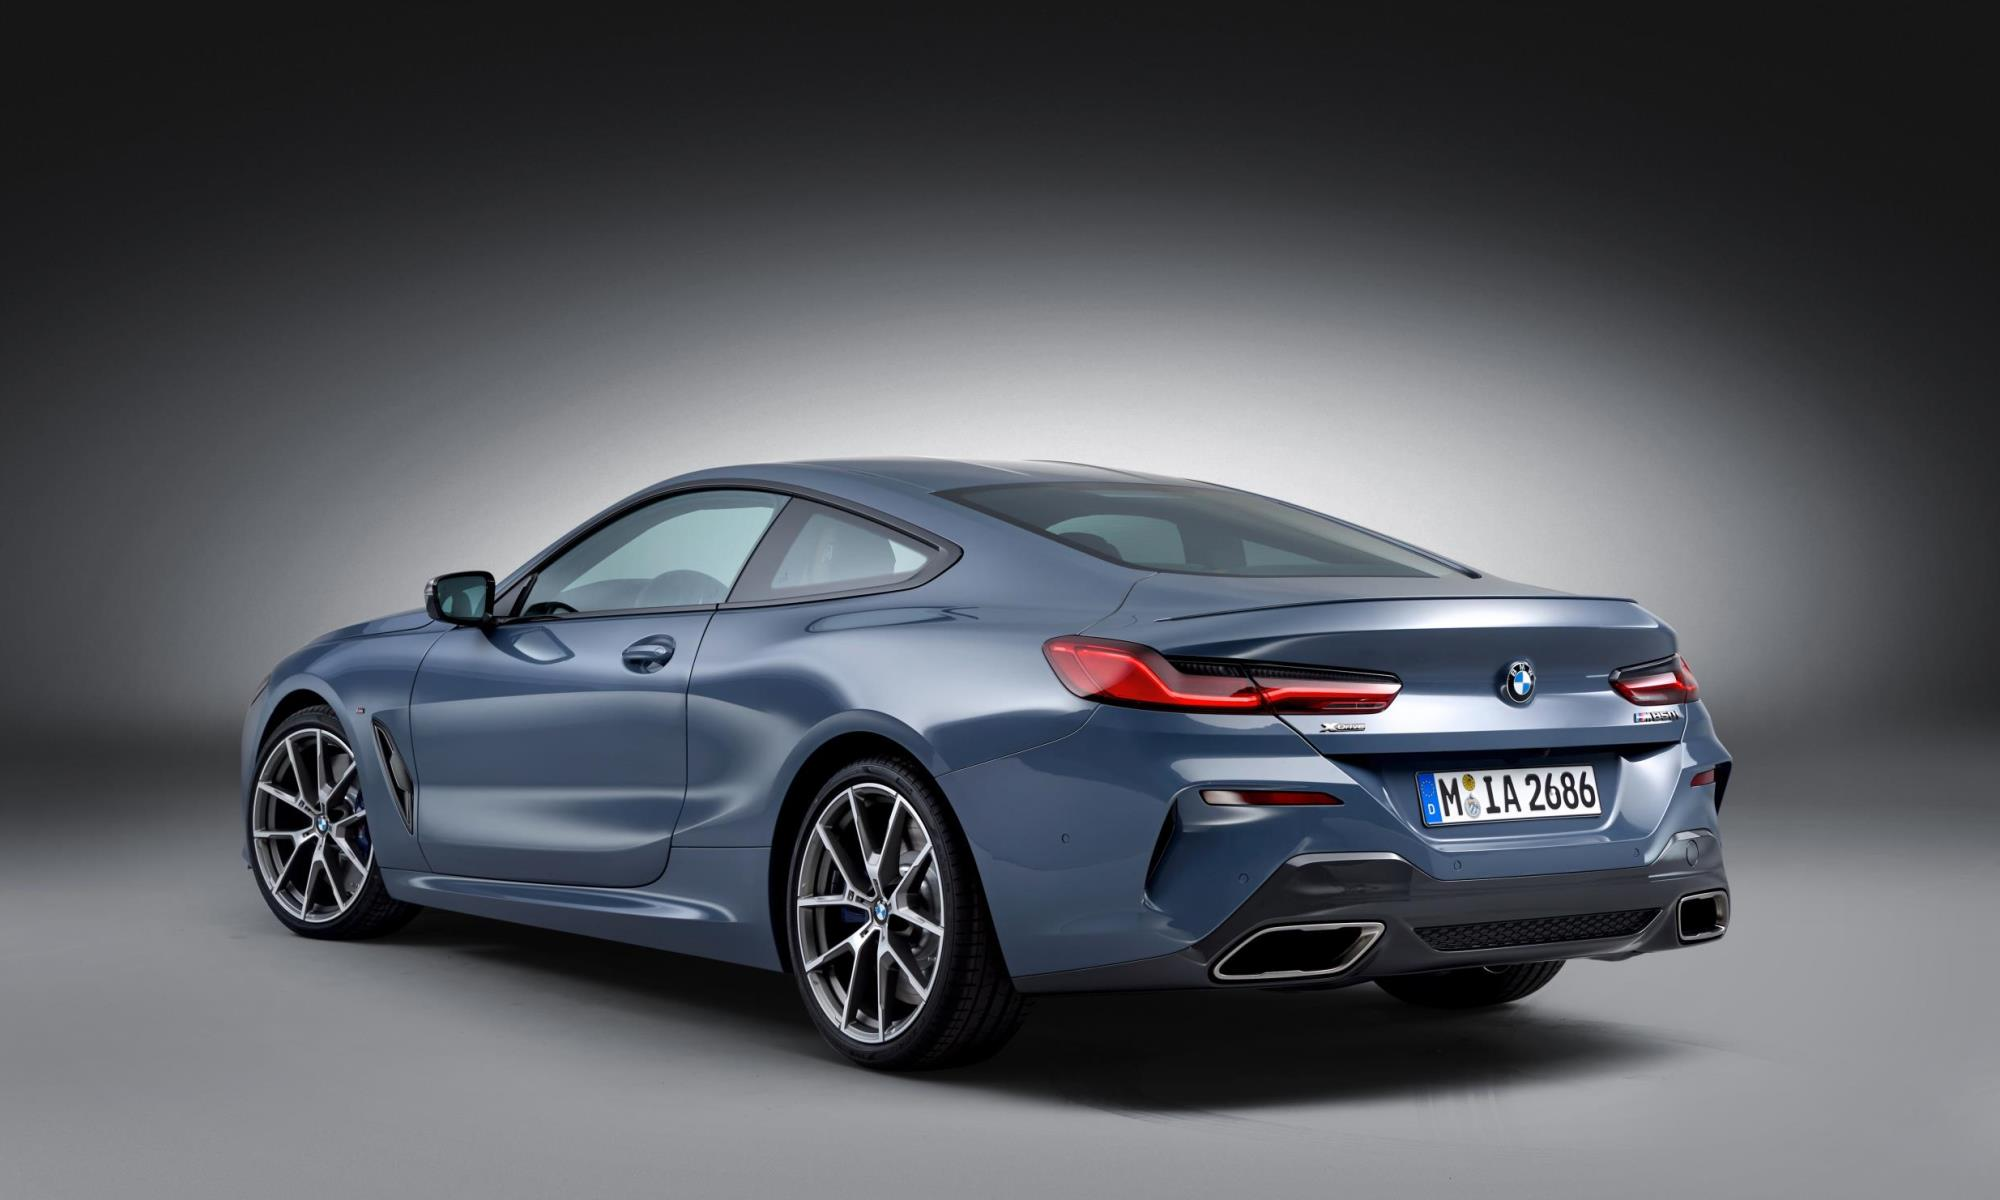 BMW 8 Series rear